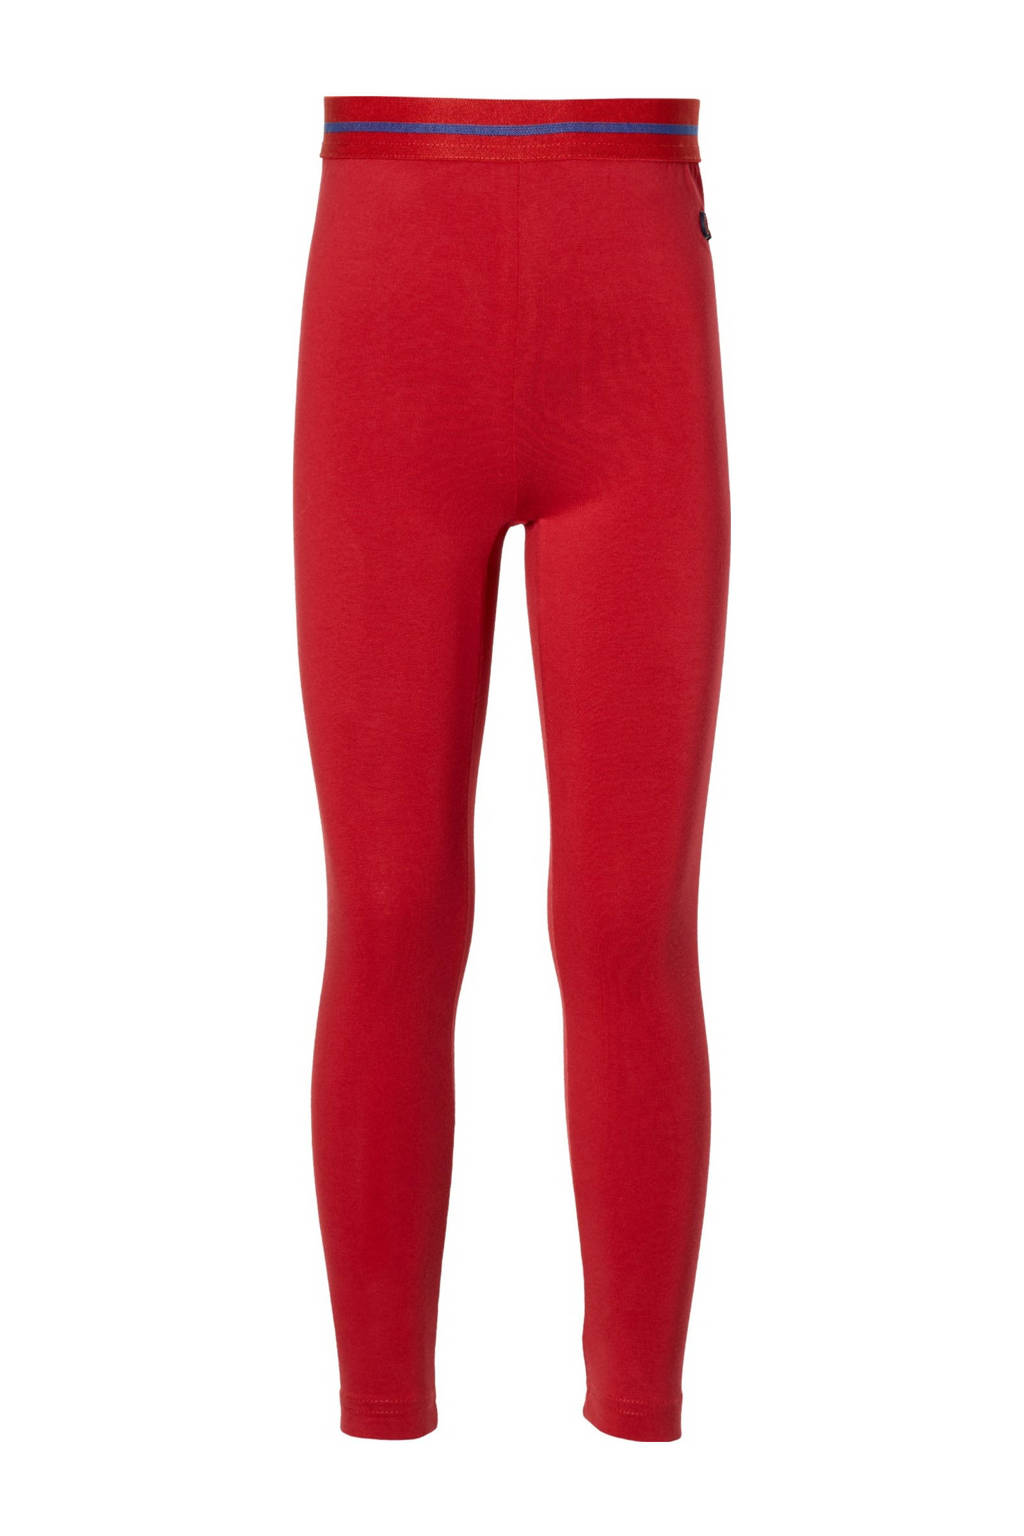 Quapi Girls regular fit legging Diva donkerrood, Donkerrood